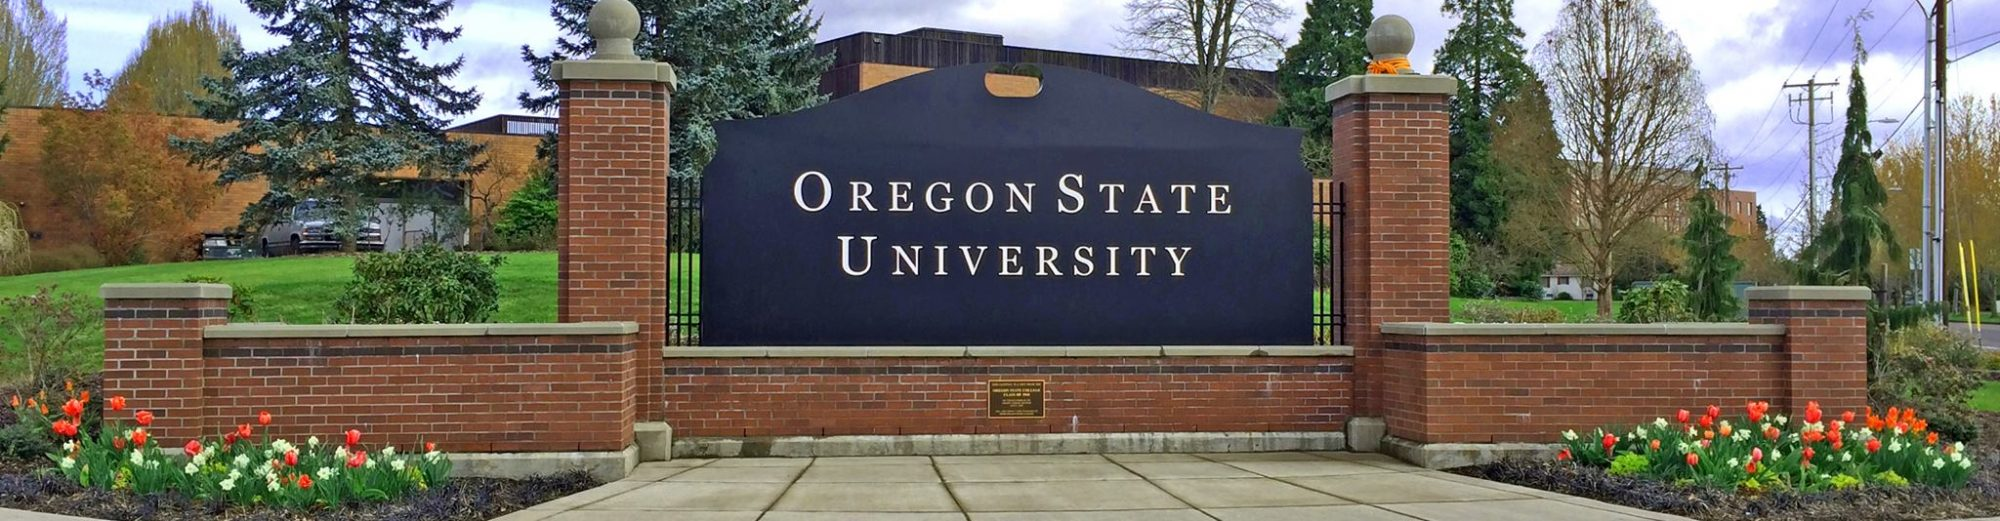 Forest Health in Oregon: State of the State